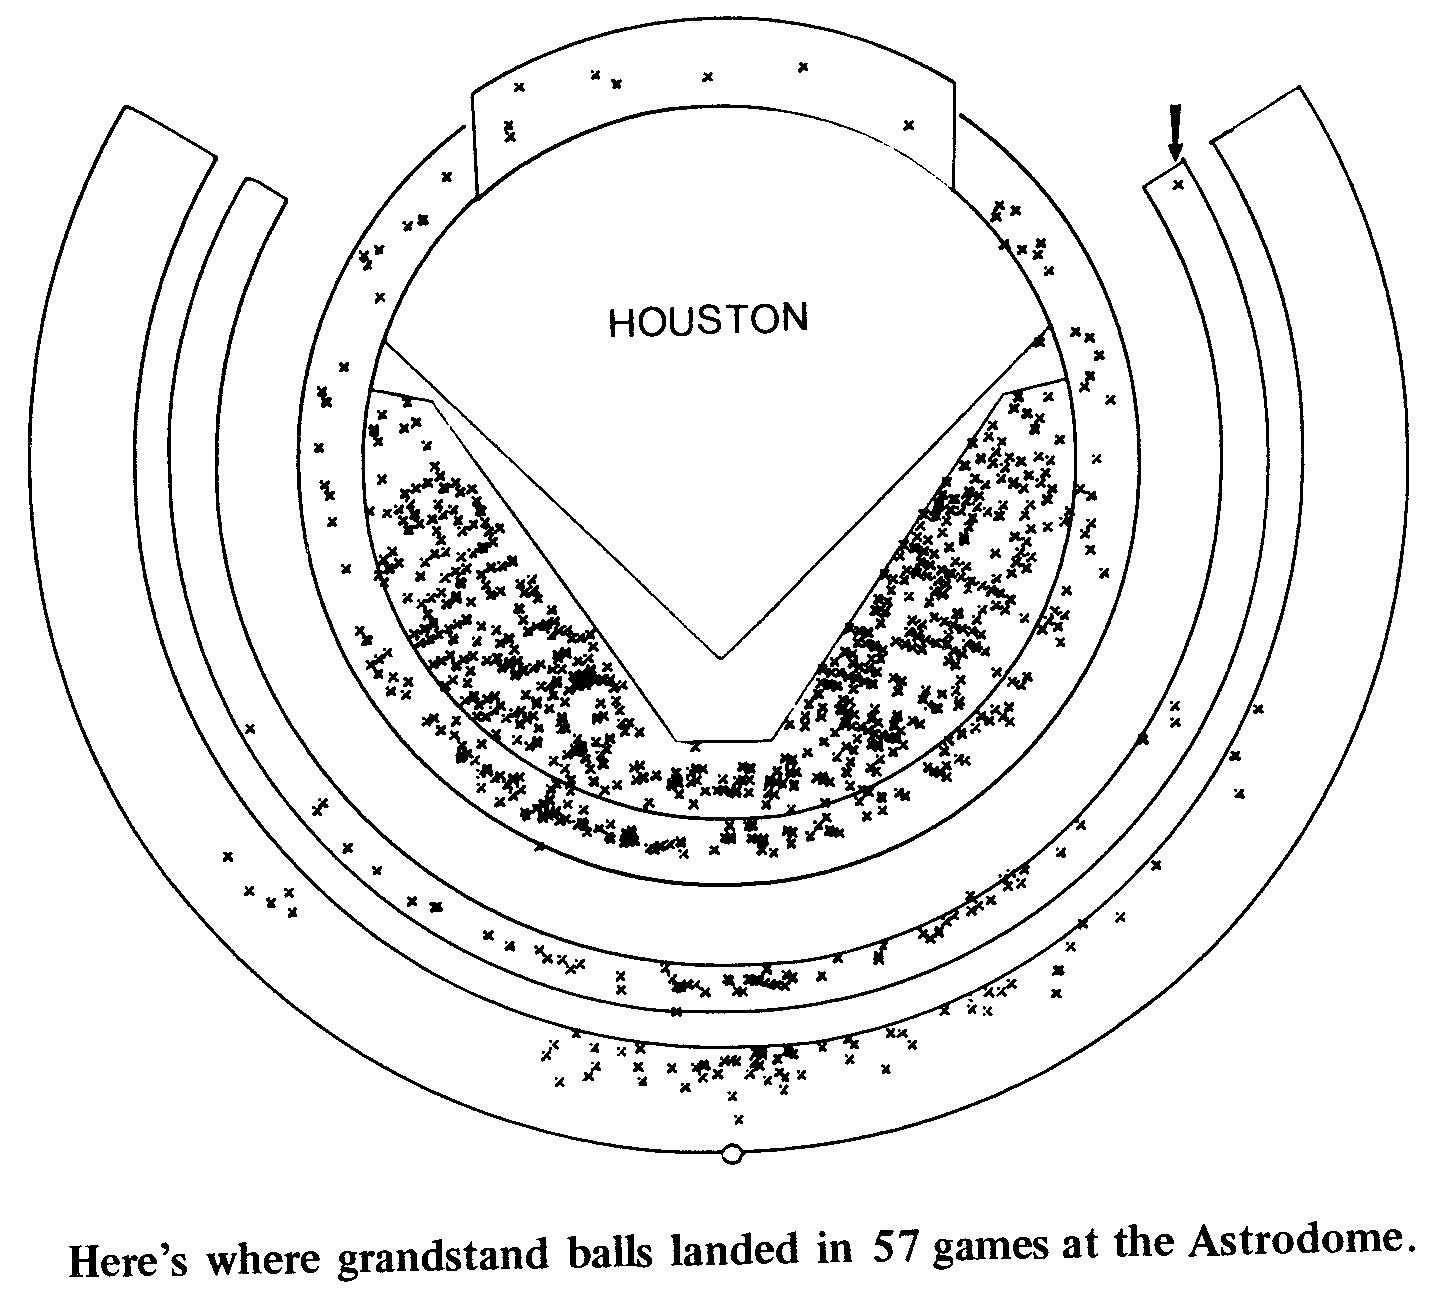 Where Grandstand Balls Land in the Astrodome